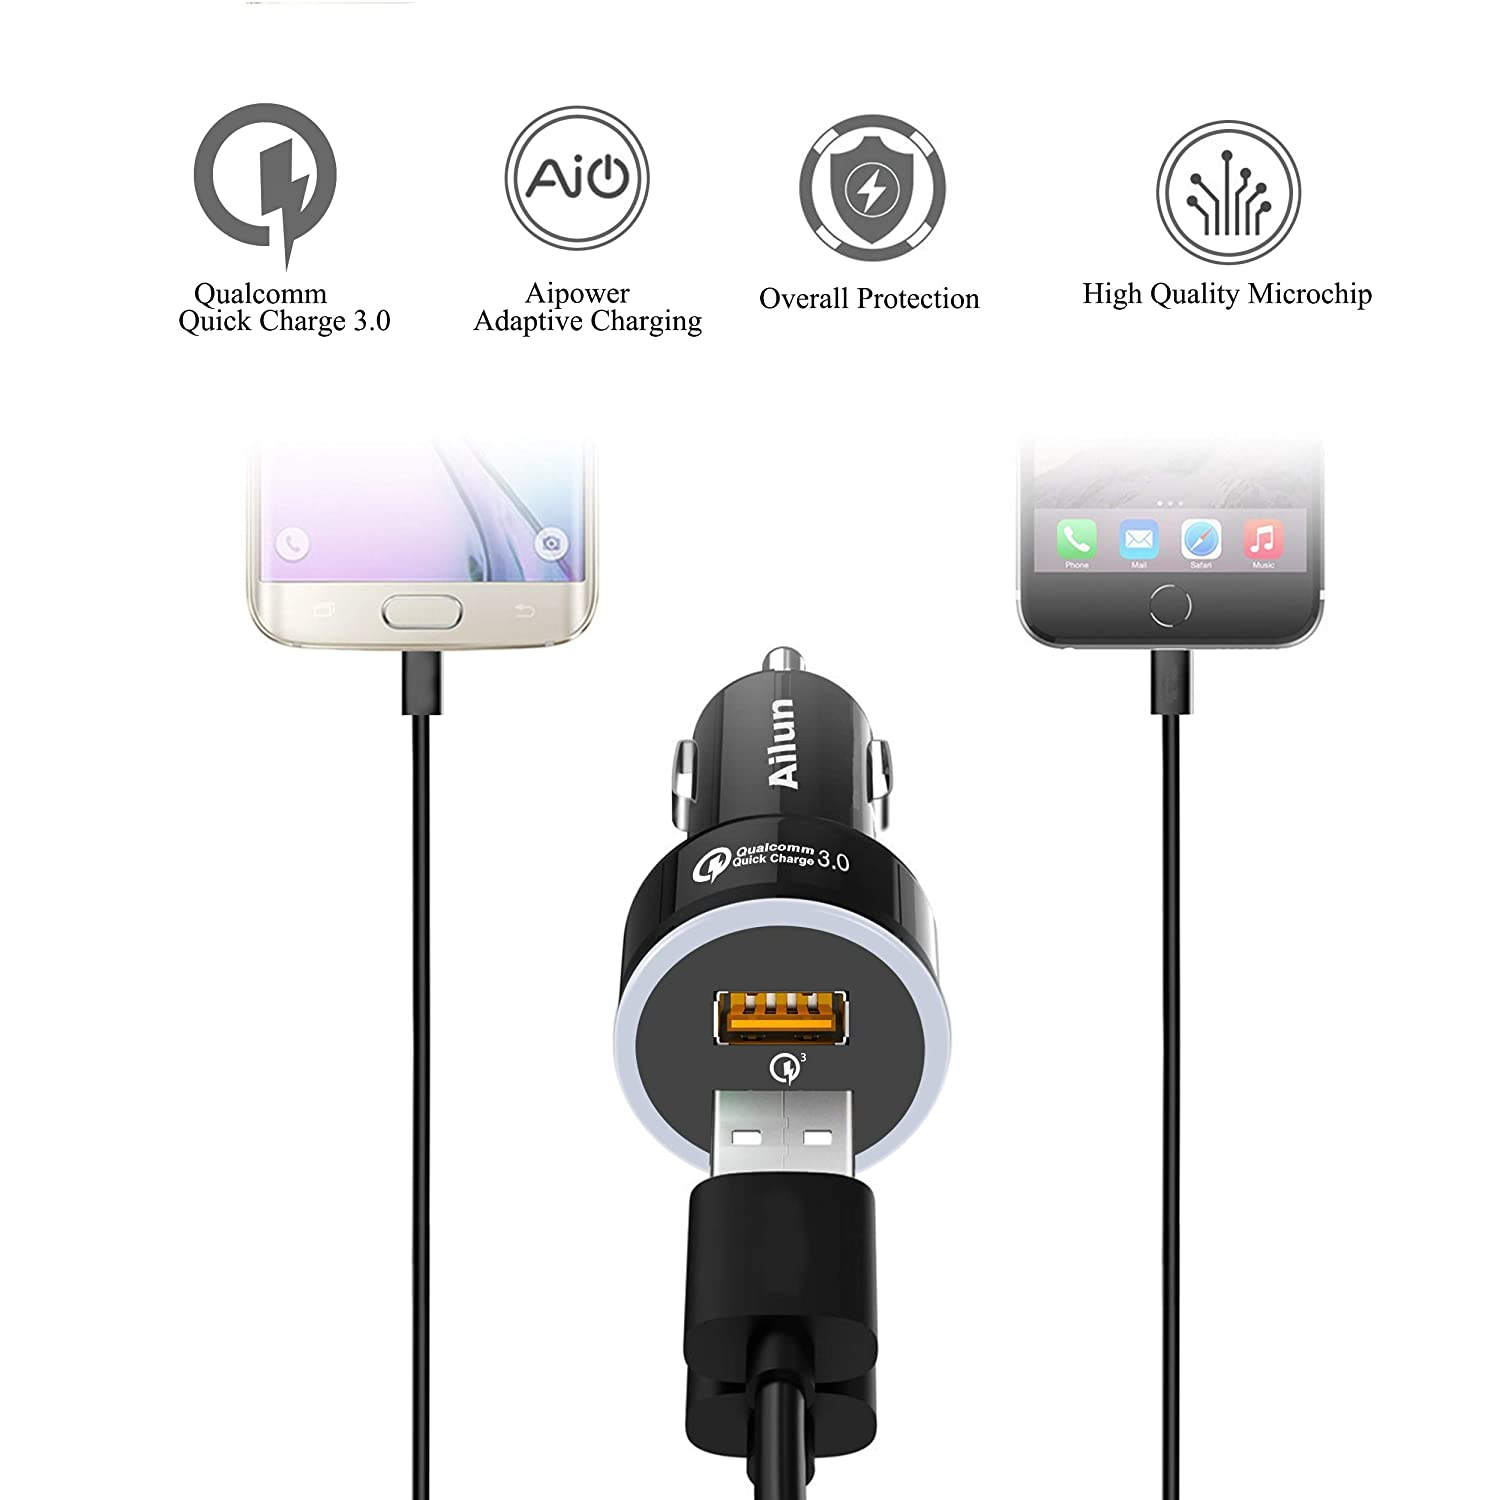 Qualcomm Quick Change 3.0 Adapter, Motorola 2Pack Black Ailun Fast Car Charger Dual USB Port 35W,for Mobile Device,Compatible iPhoneX//Xs//XR//Xs Max//8//7,8//7Plus,6//6s//6s Plus,Galaxy S9 S9+ S8 S7 Siania 4351486130